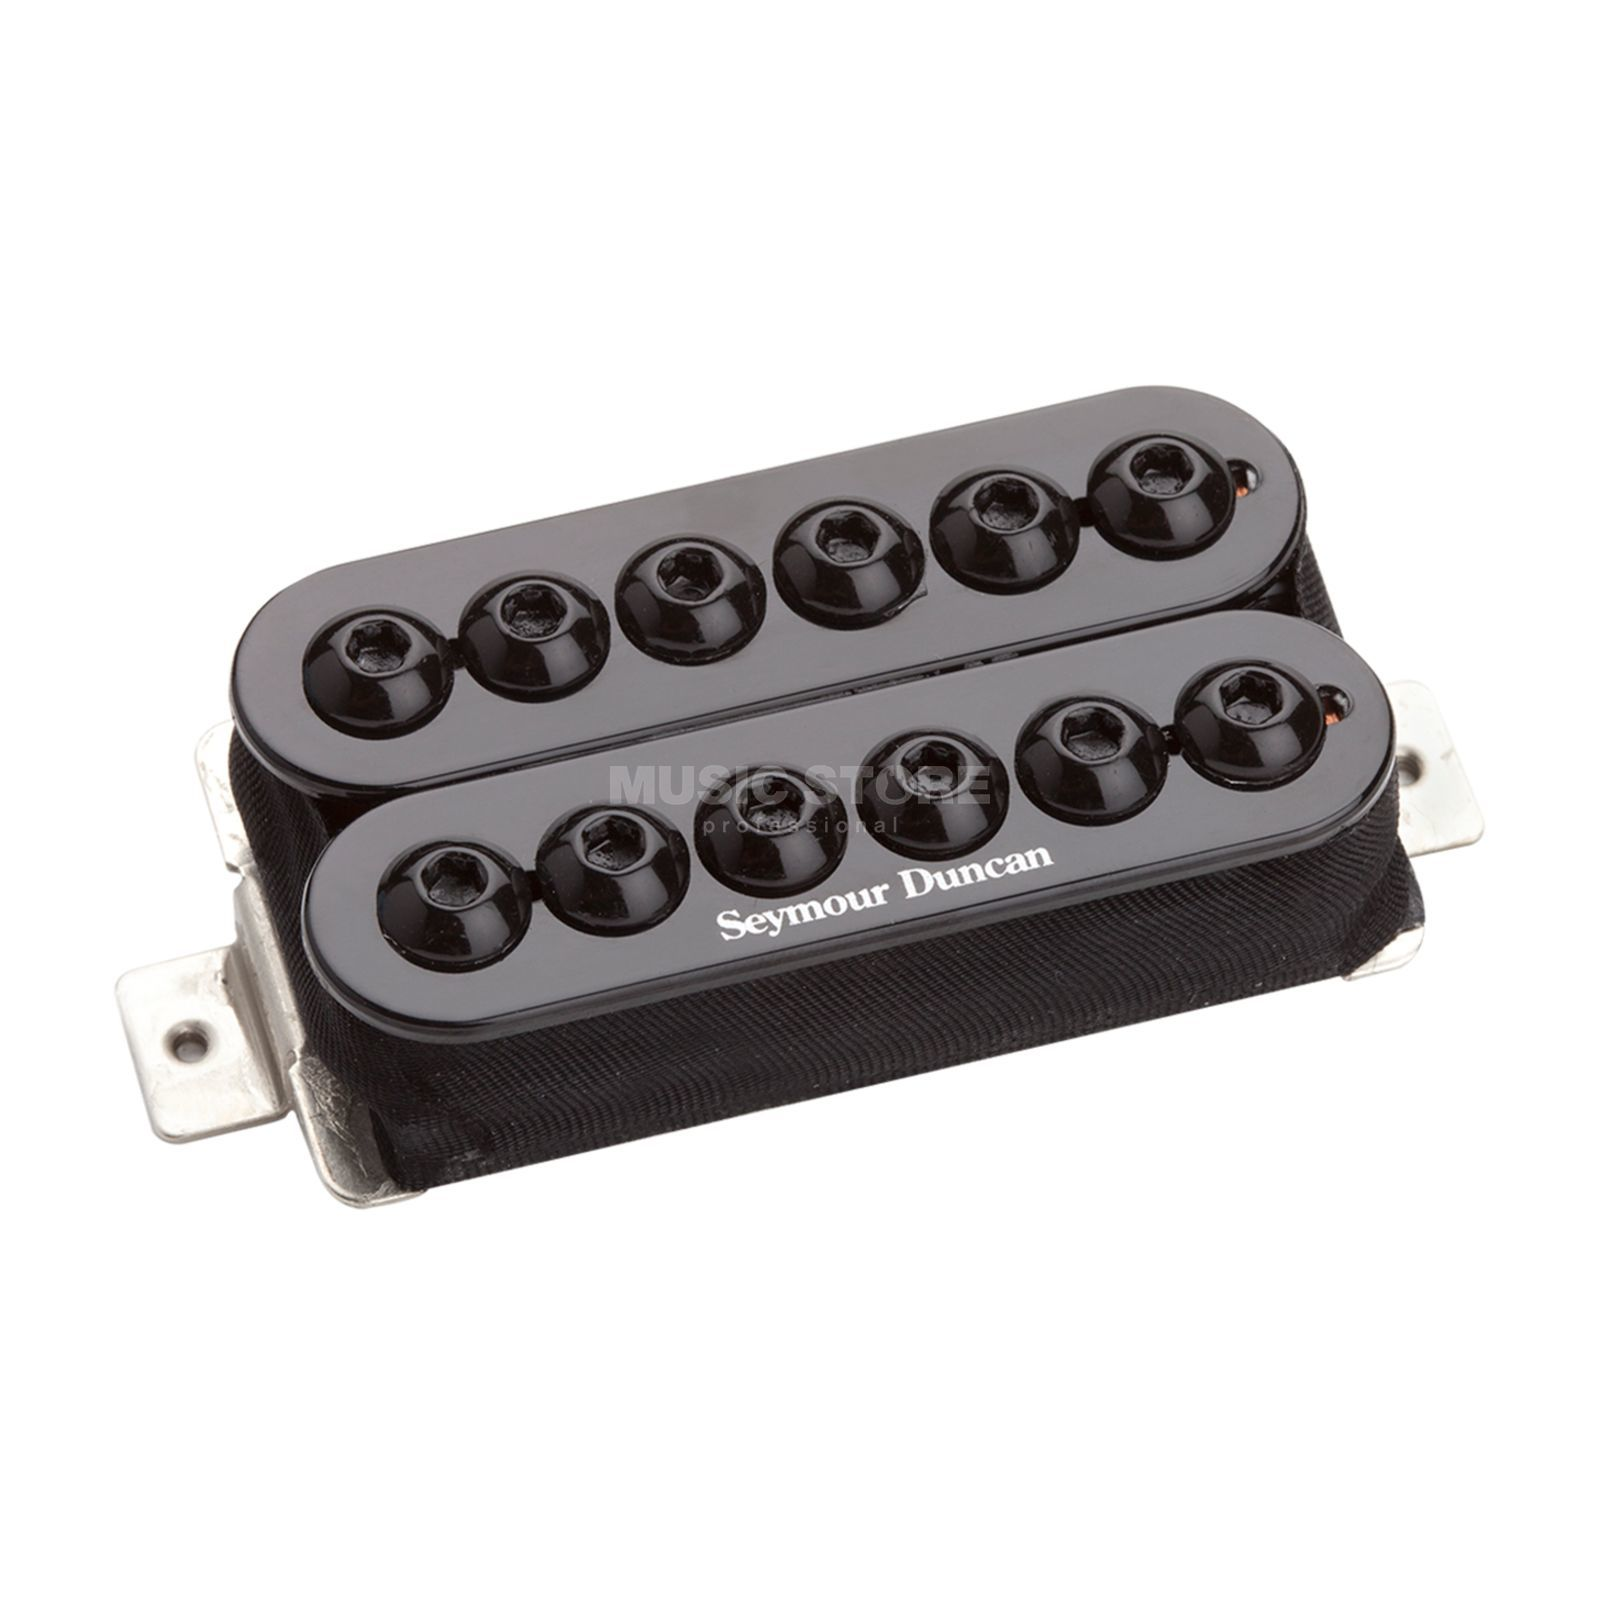 Seymour Duncan Invader Modell Bridge black 4-phase Product Image